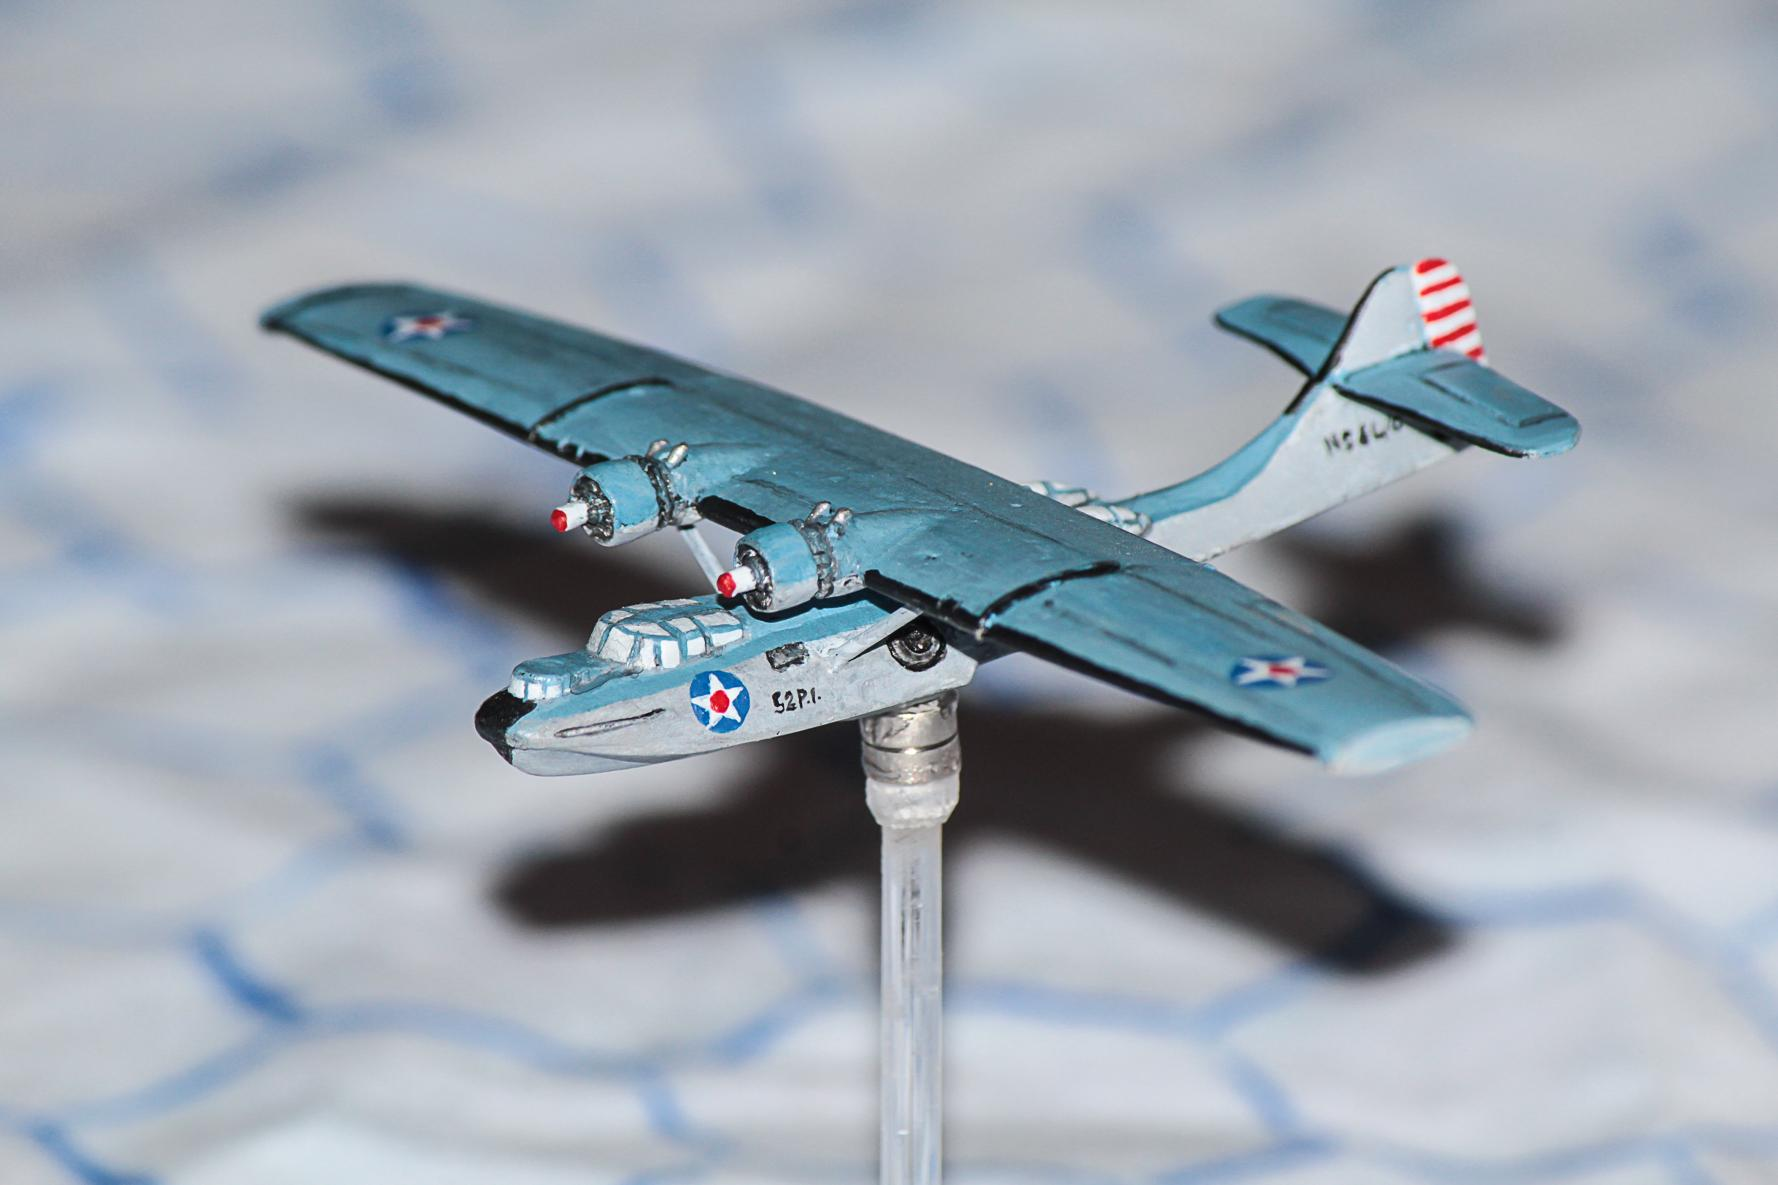 1:300, 1:300 Scale, 6mm, 6mm Scale, Air Combat, Airborne, Aircraft, Airplane, Aviation, Bomber, Check Your 6!, Finland, Fliers, Flying Boat, French, Germans, Historical, Imperial Japan, Italian, Luftwaffe, Raf, Republic Of China, Soviet, Usaaf, World War 2